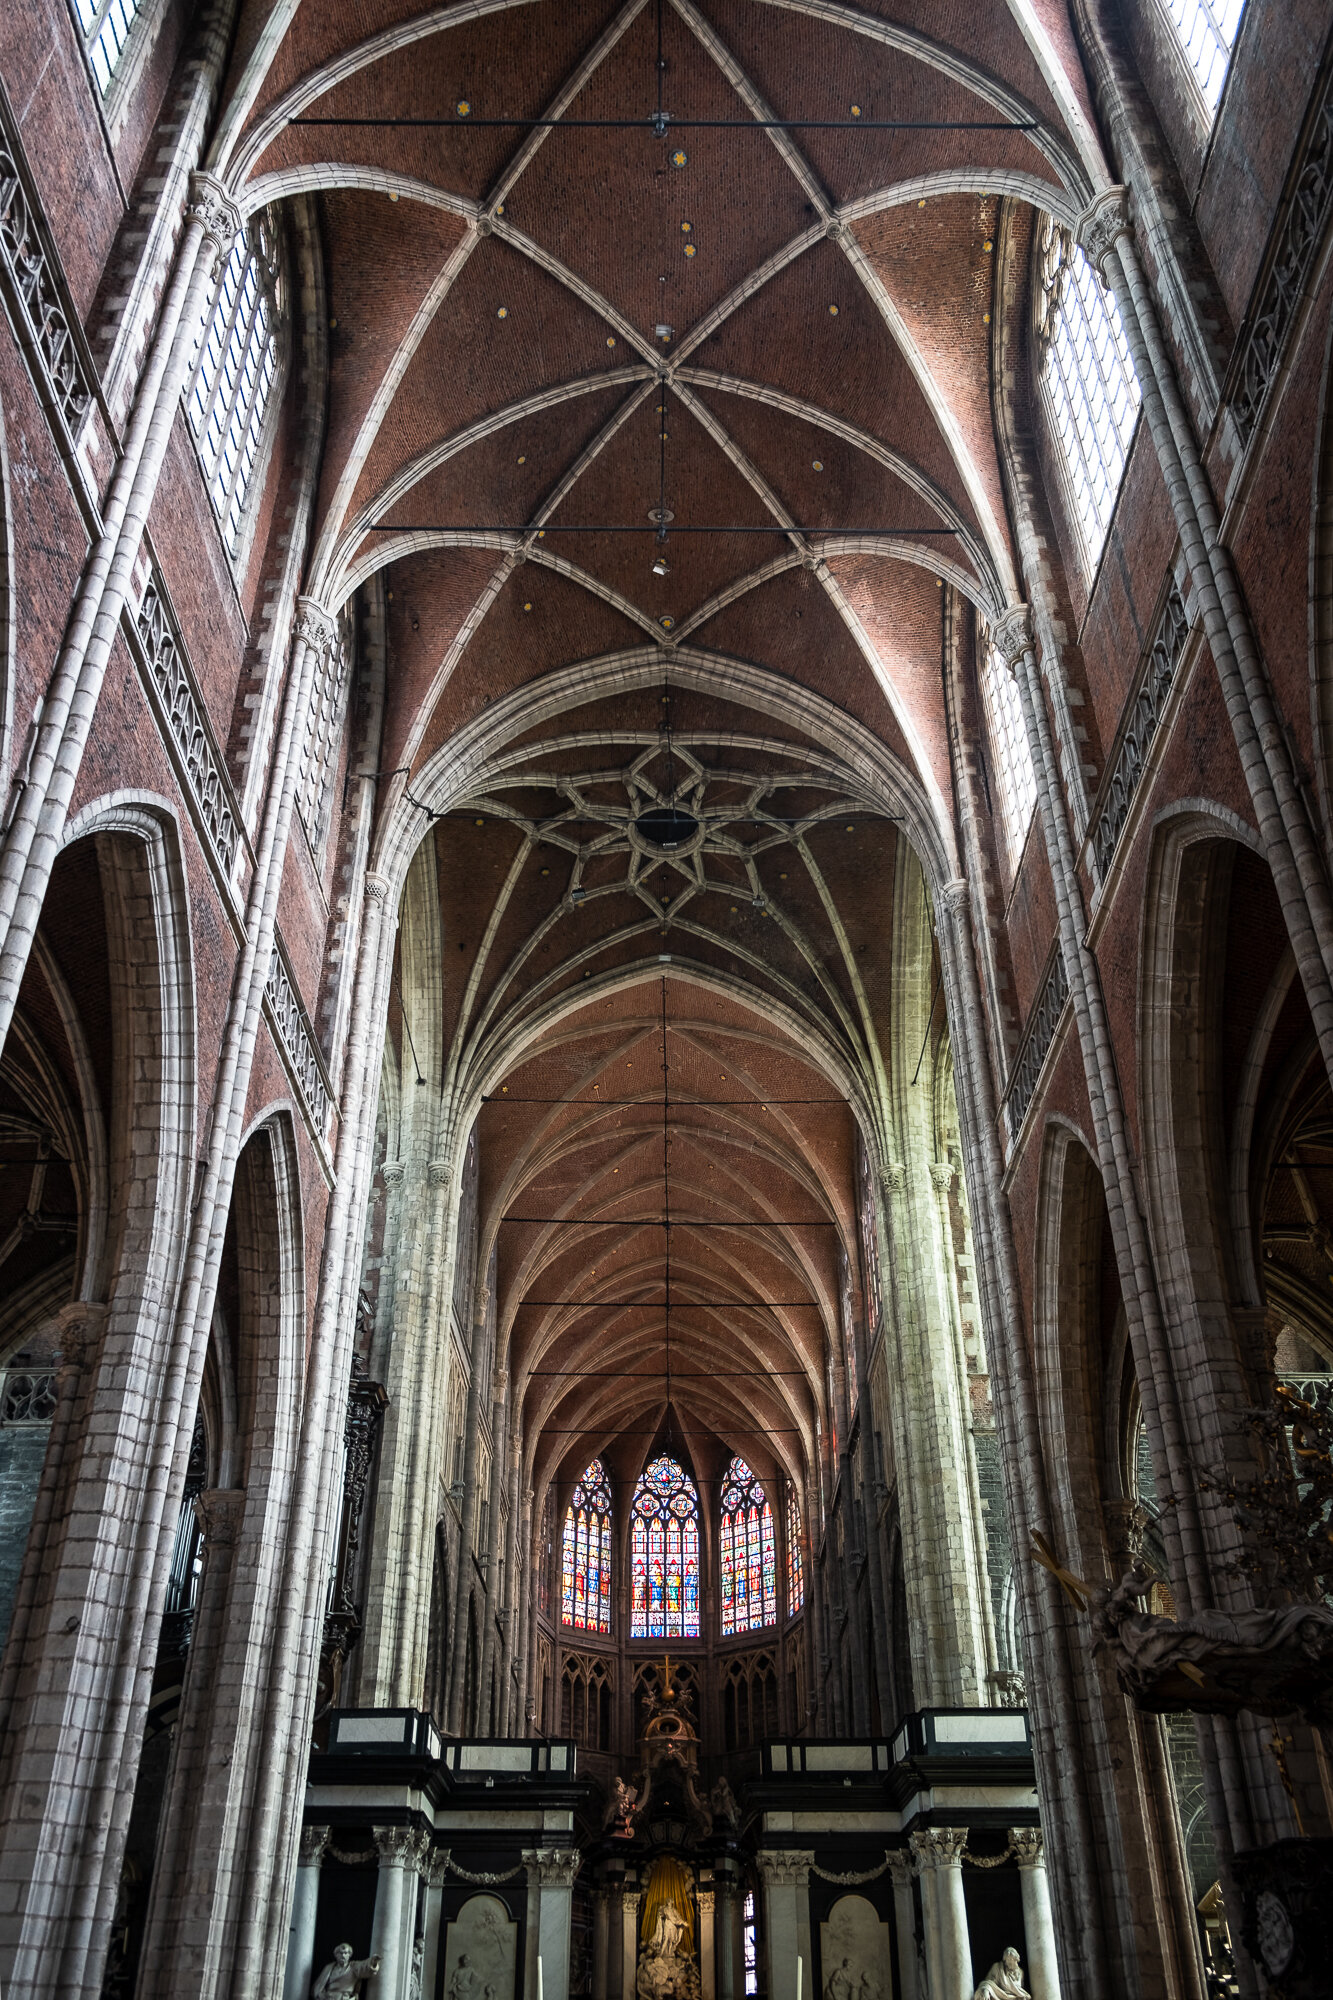 Saint Bavo Cathedral's incredible interior architecture